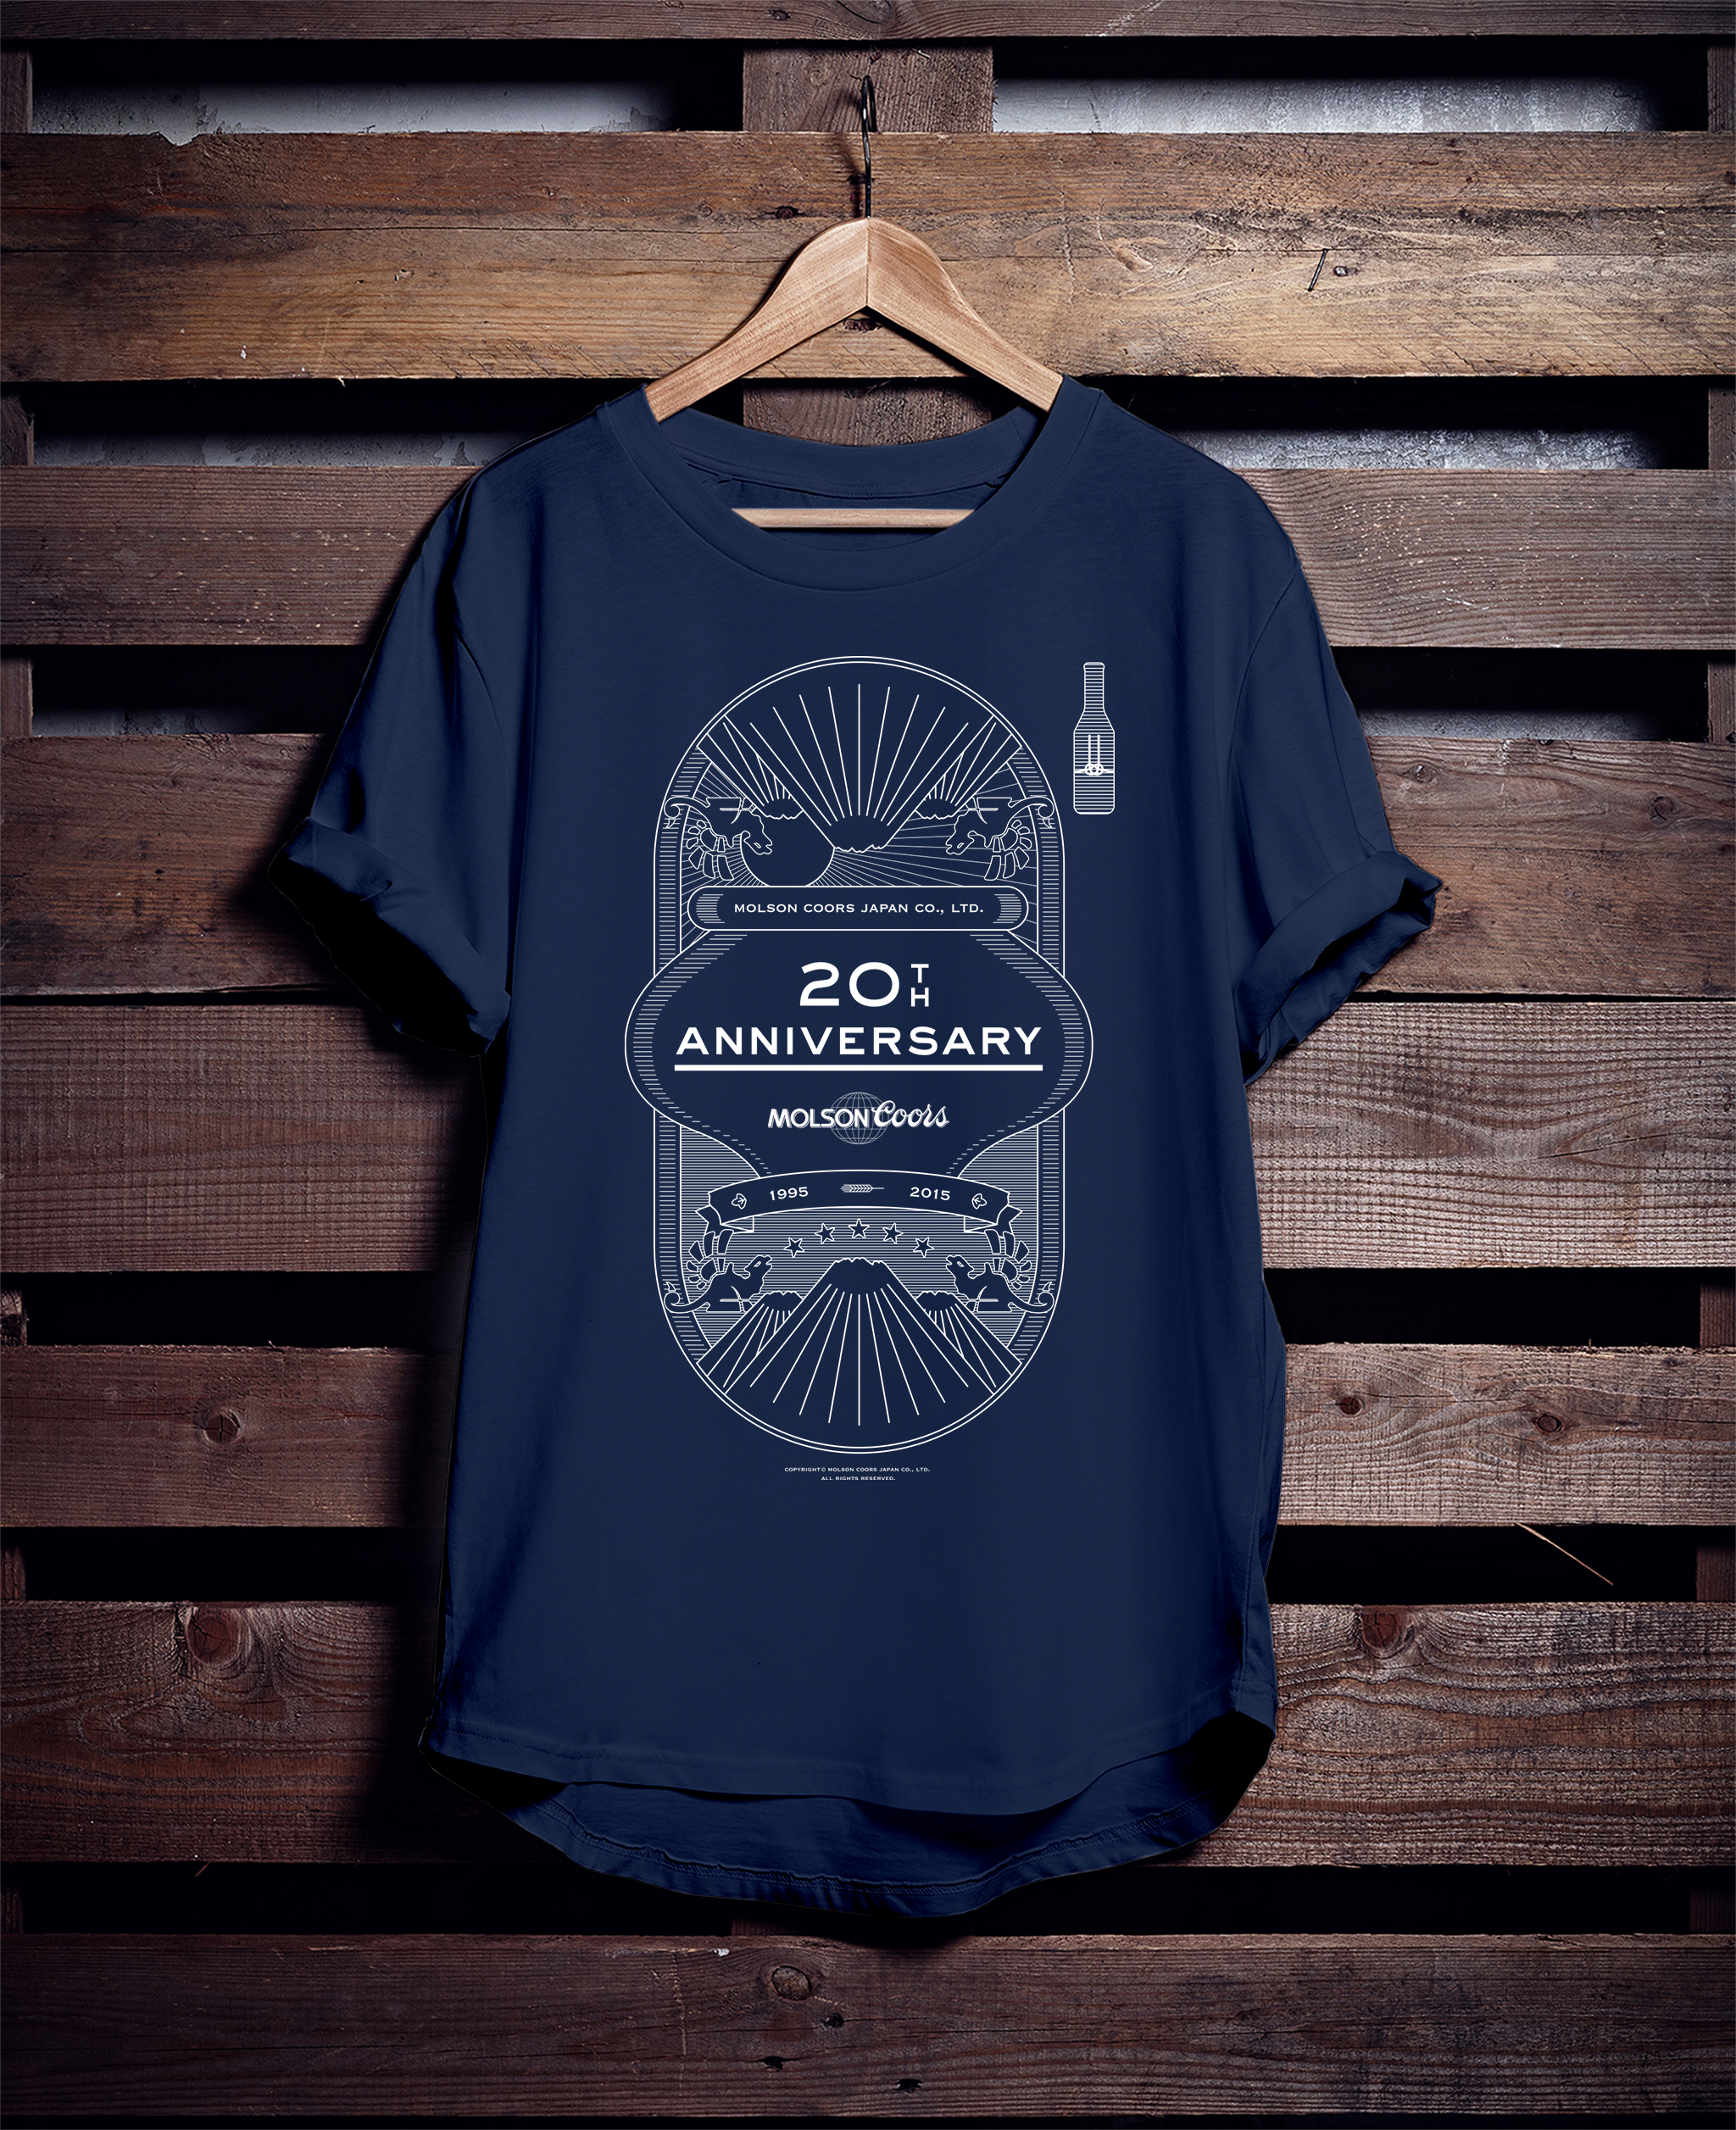 molson_20th_Tshirt_02